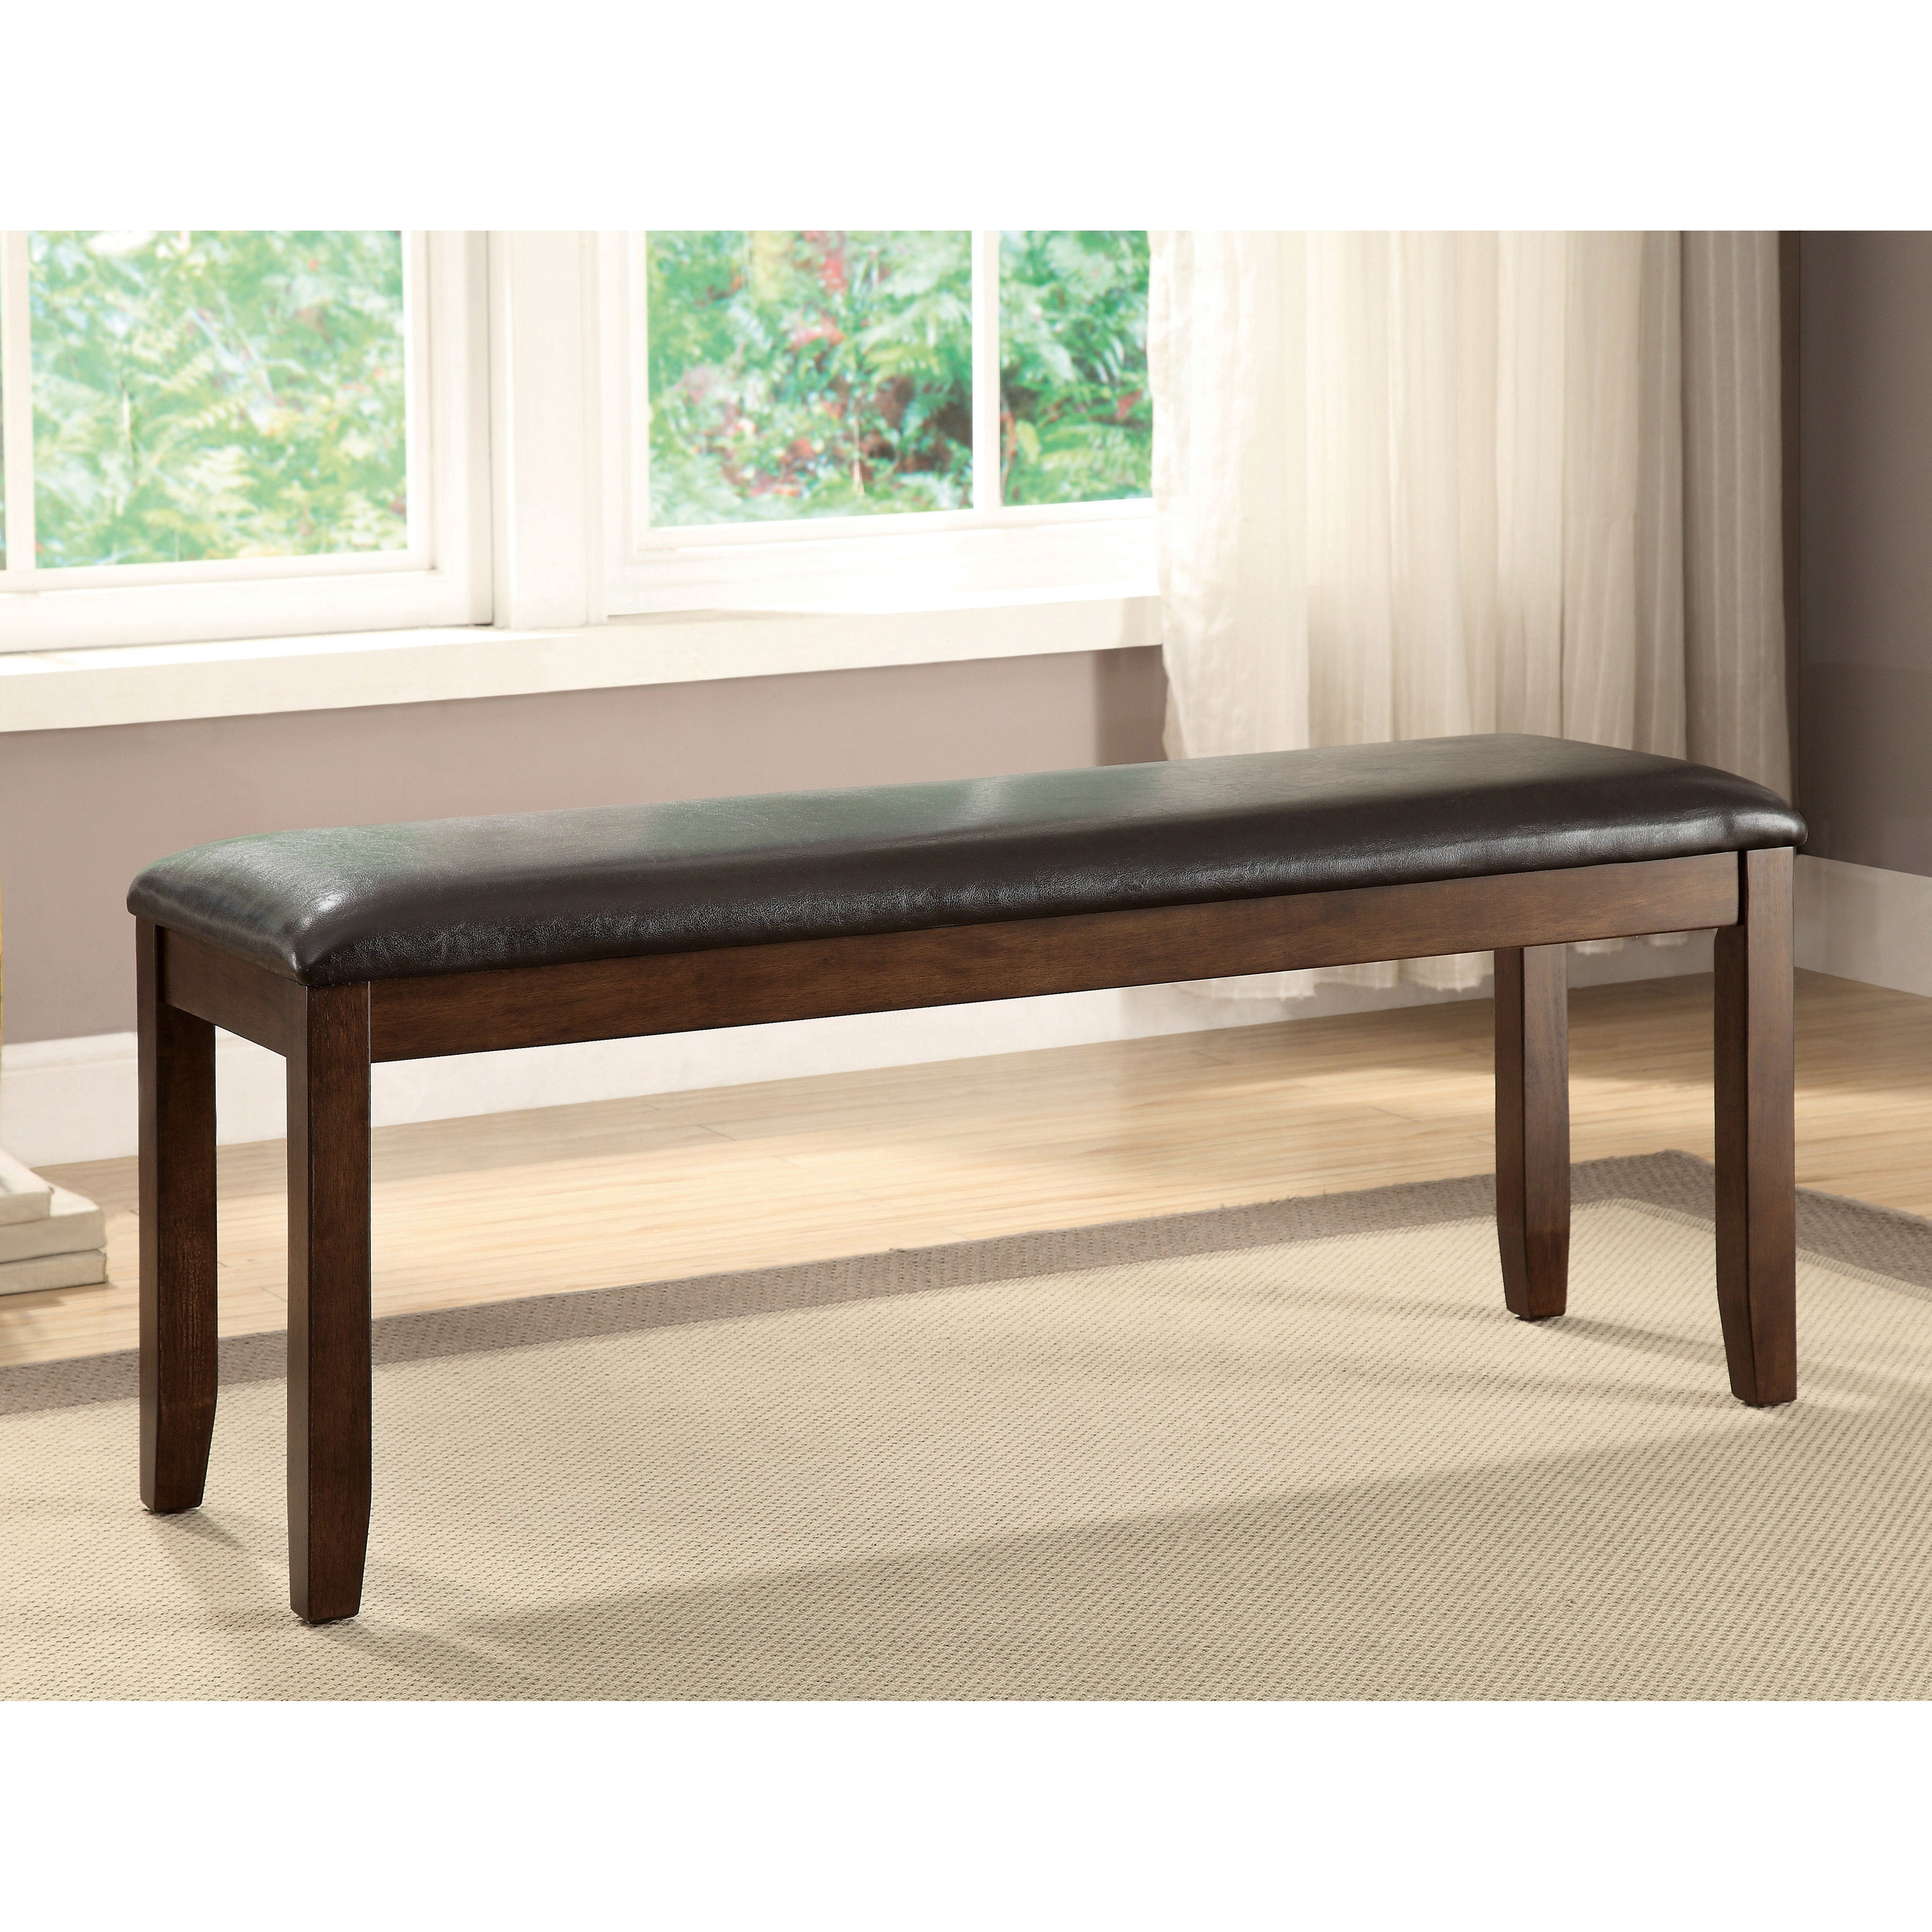 Shop Furniture Of America Casington Country Style Rustic Oak Upholstered Dining Bench Overstock 12984209